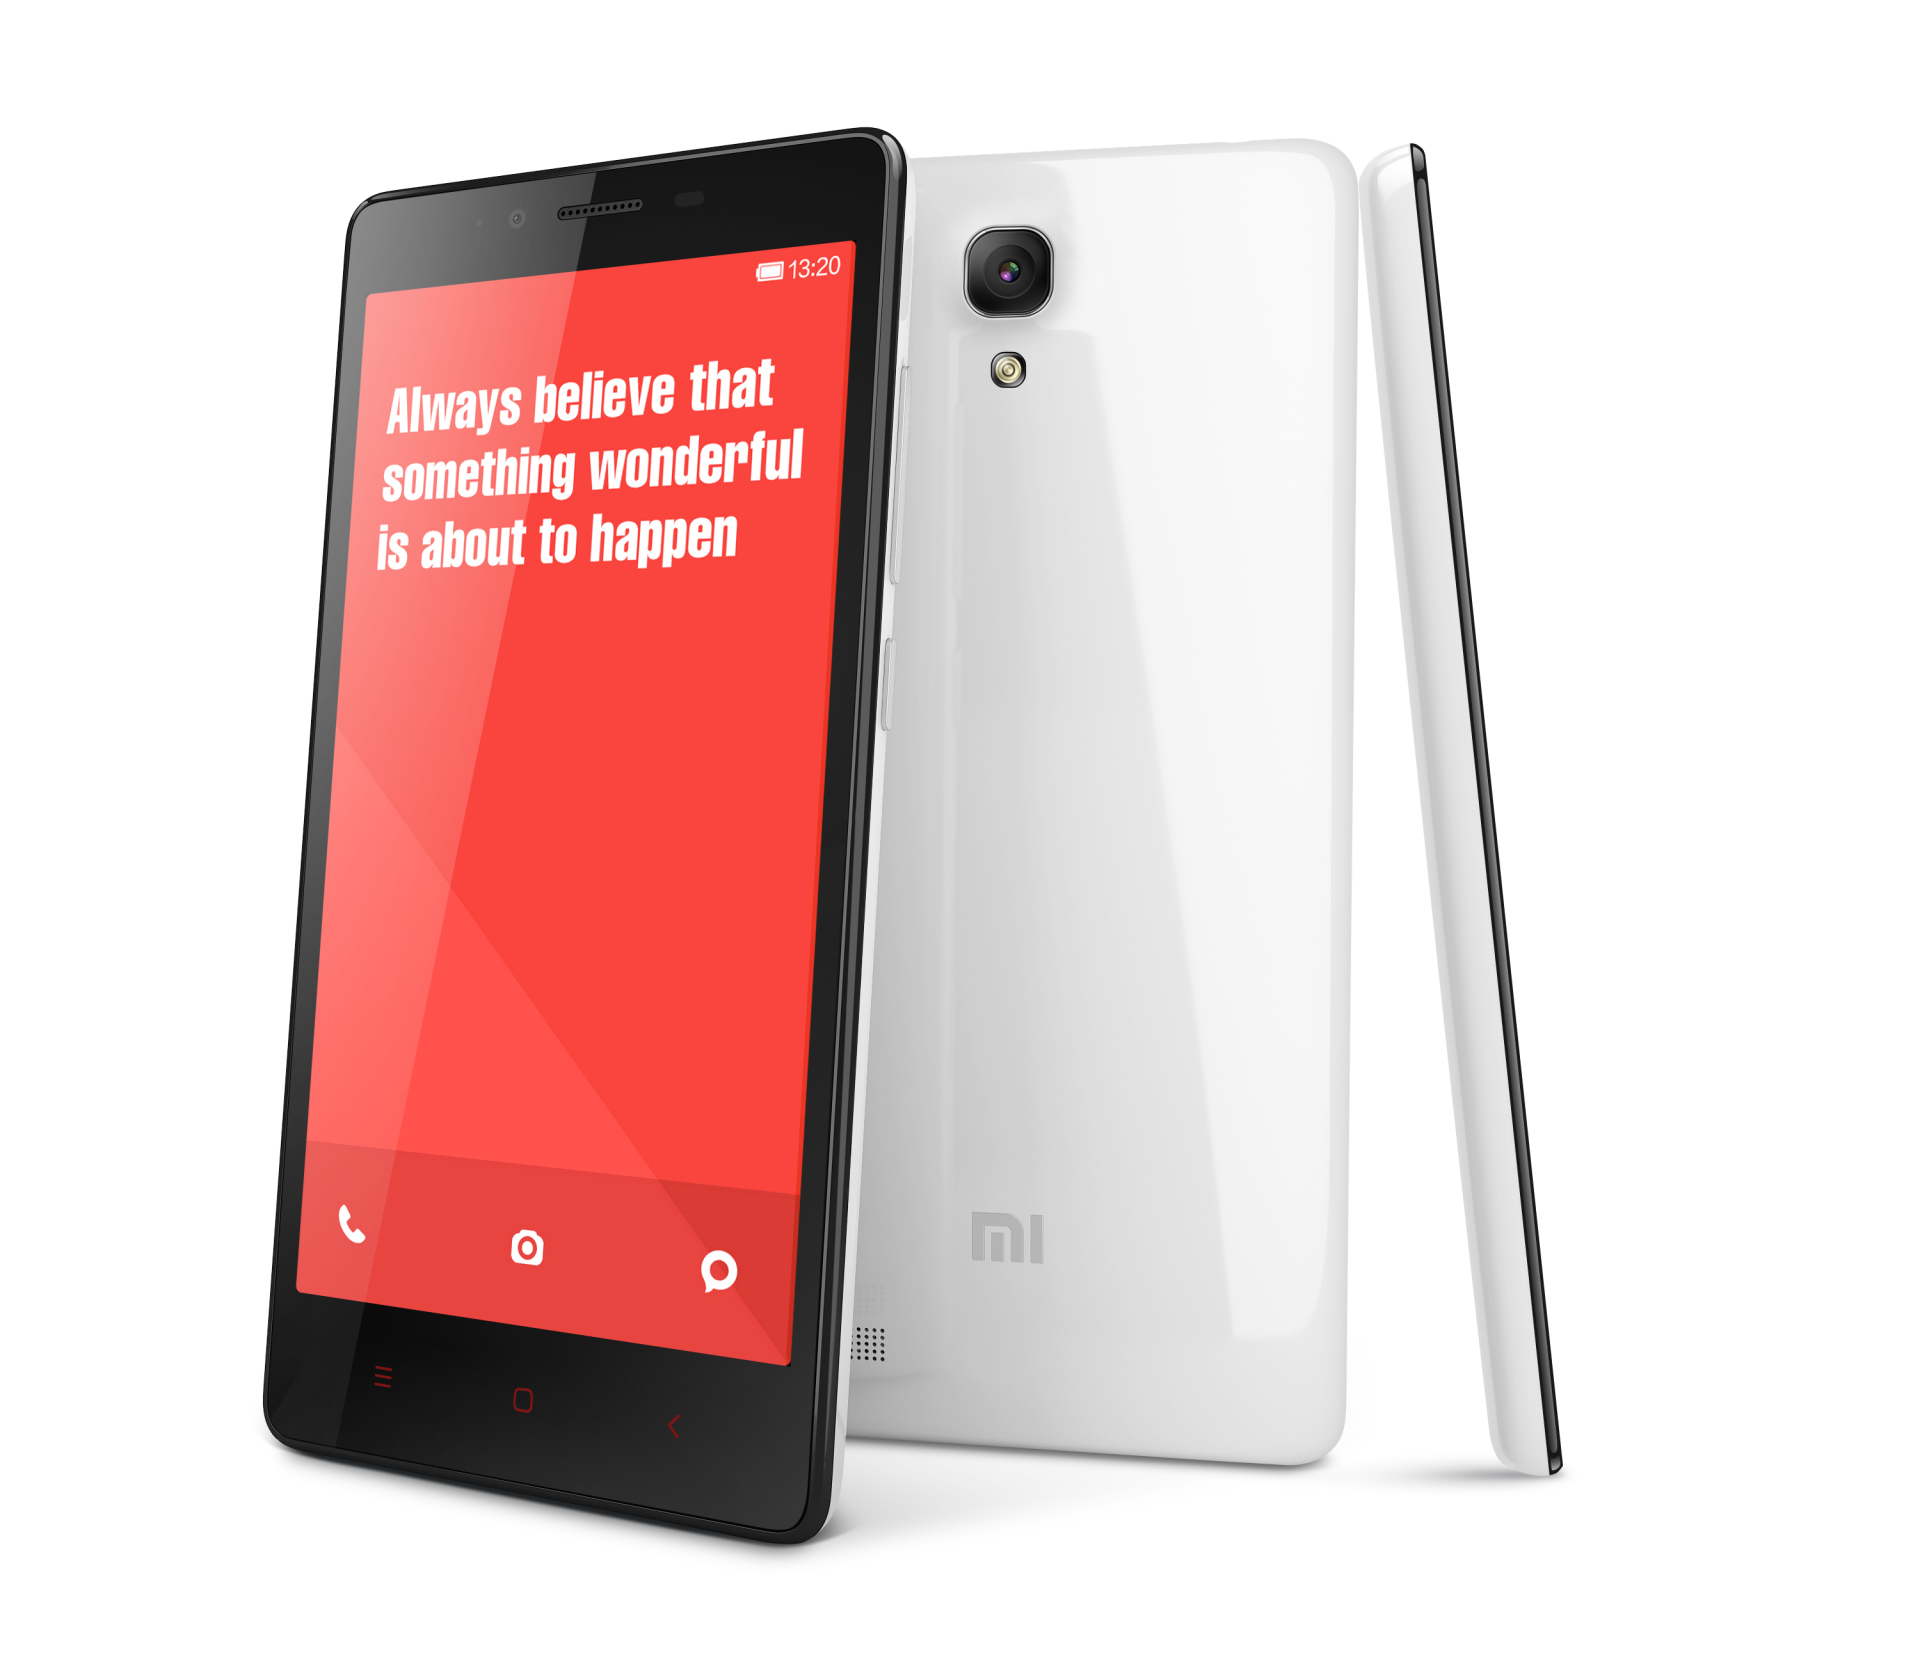 With Redmi Note 4G, Xiaomi brings another low-cost 4G ...